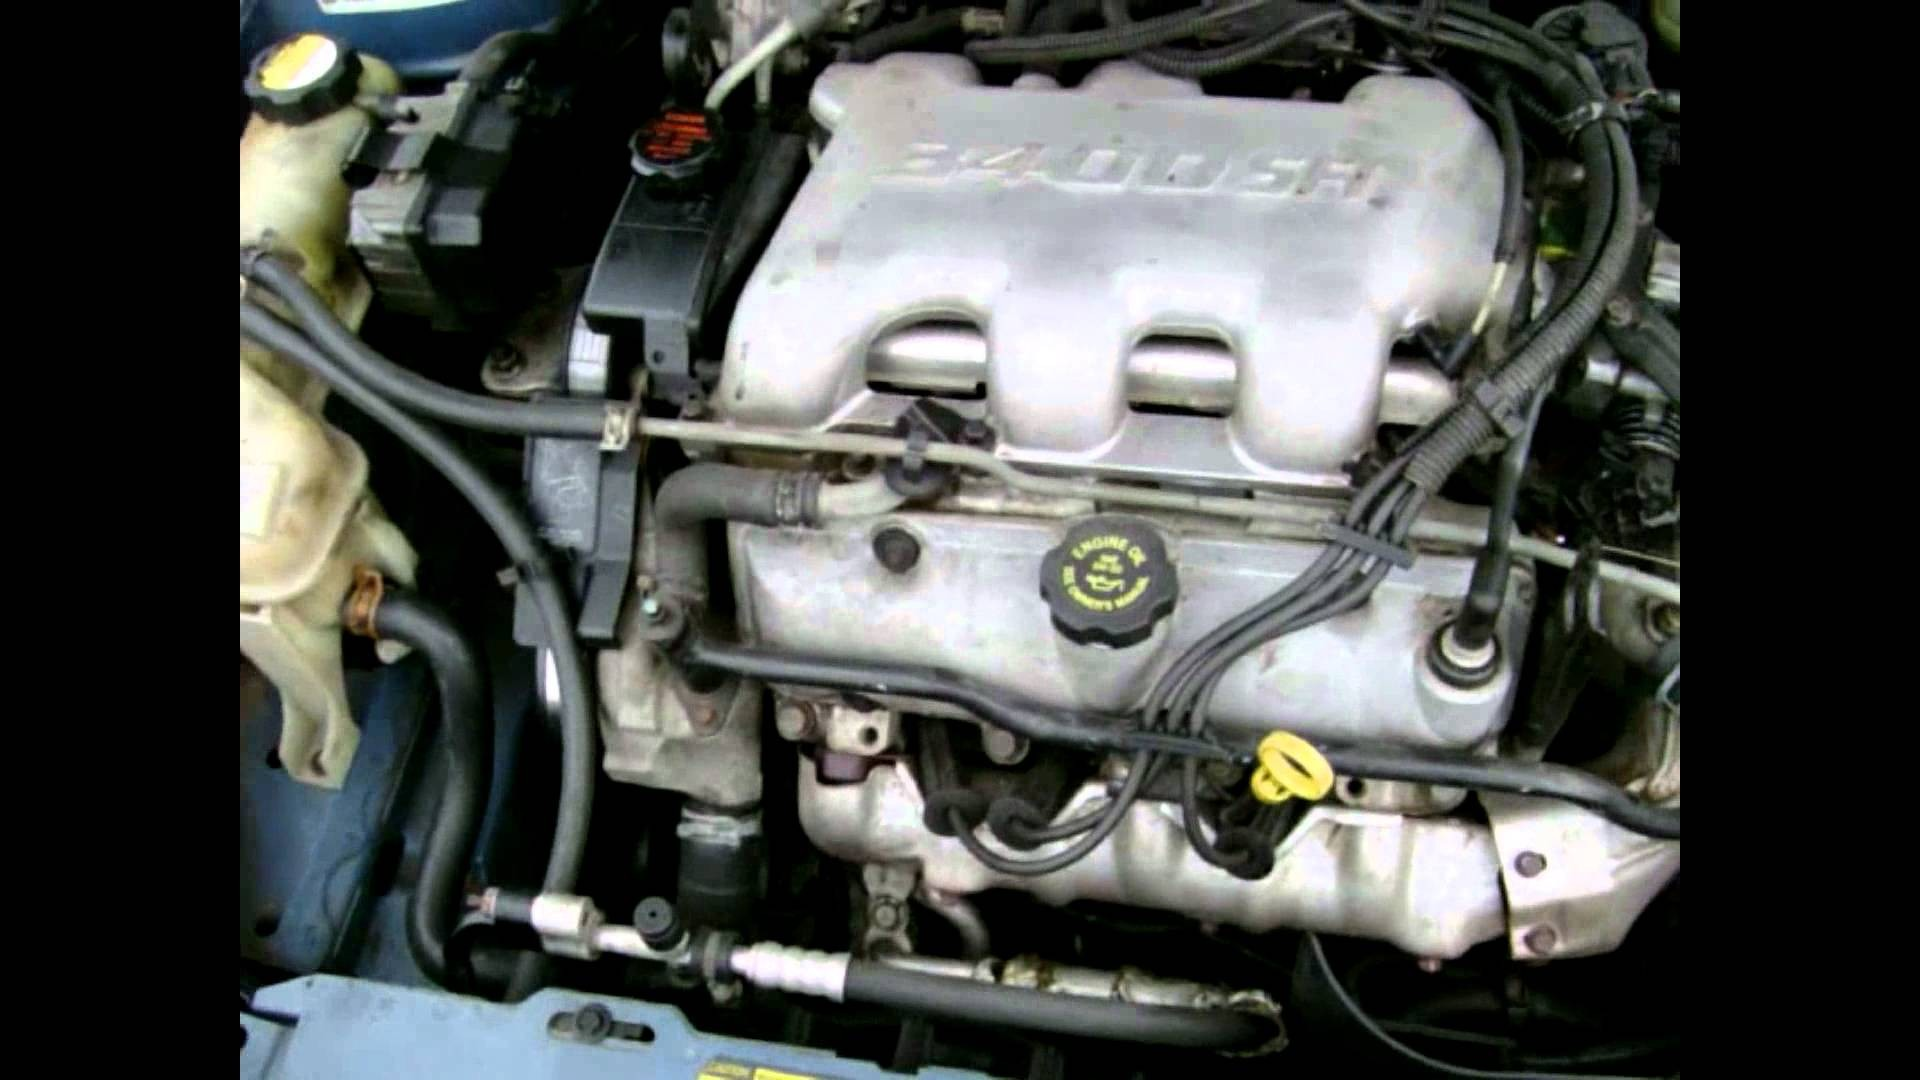 2003 chevrolet wiring diagram monte carlo 3 4l wiring diagram rh  friendsoffido co 2005 Impala Engine Diagram 2006 Chevy Impala Engine Diagram